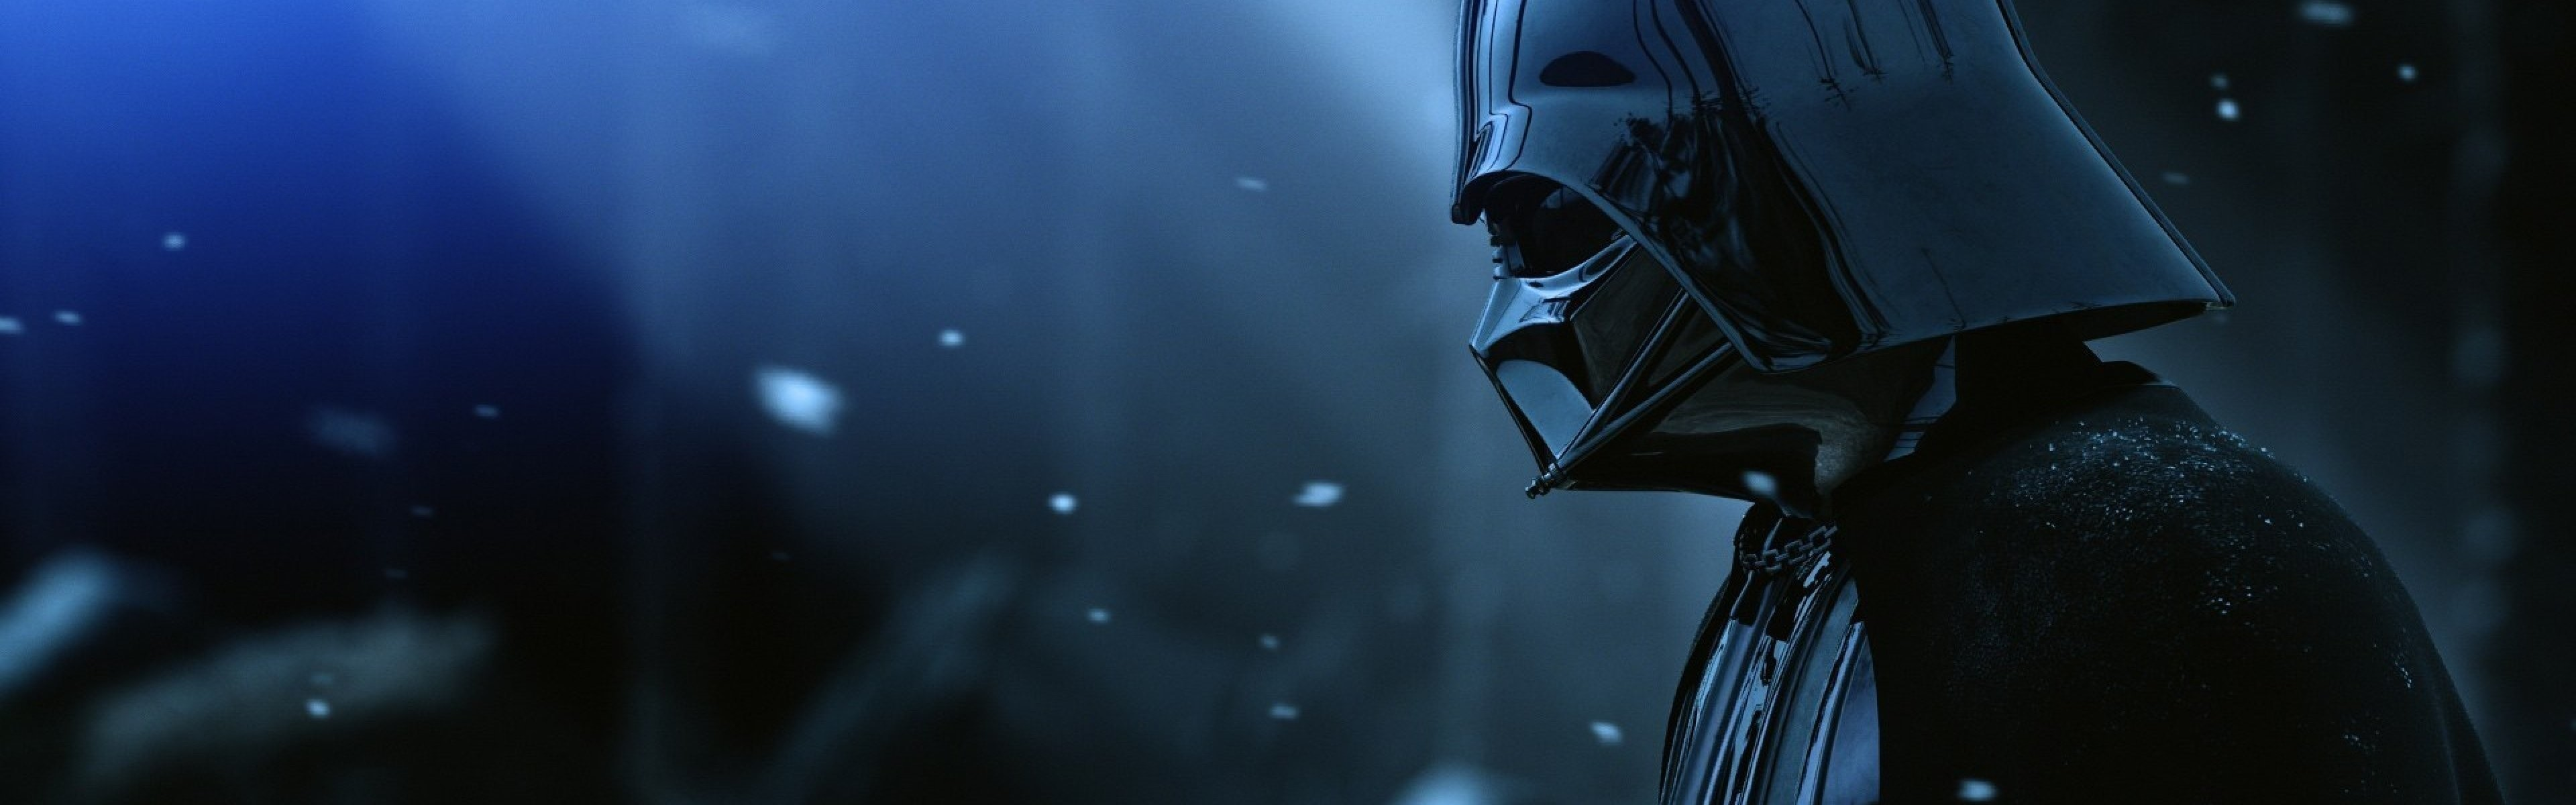 3840x1200 ... darth vader wallpapers the wallpaper; vader wallpapers wallpaperup .